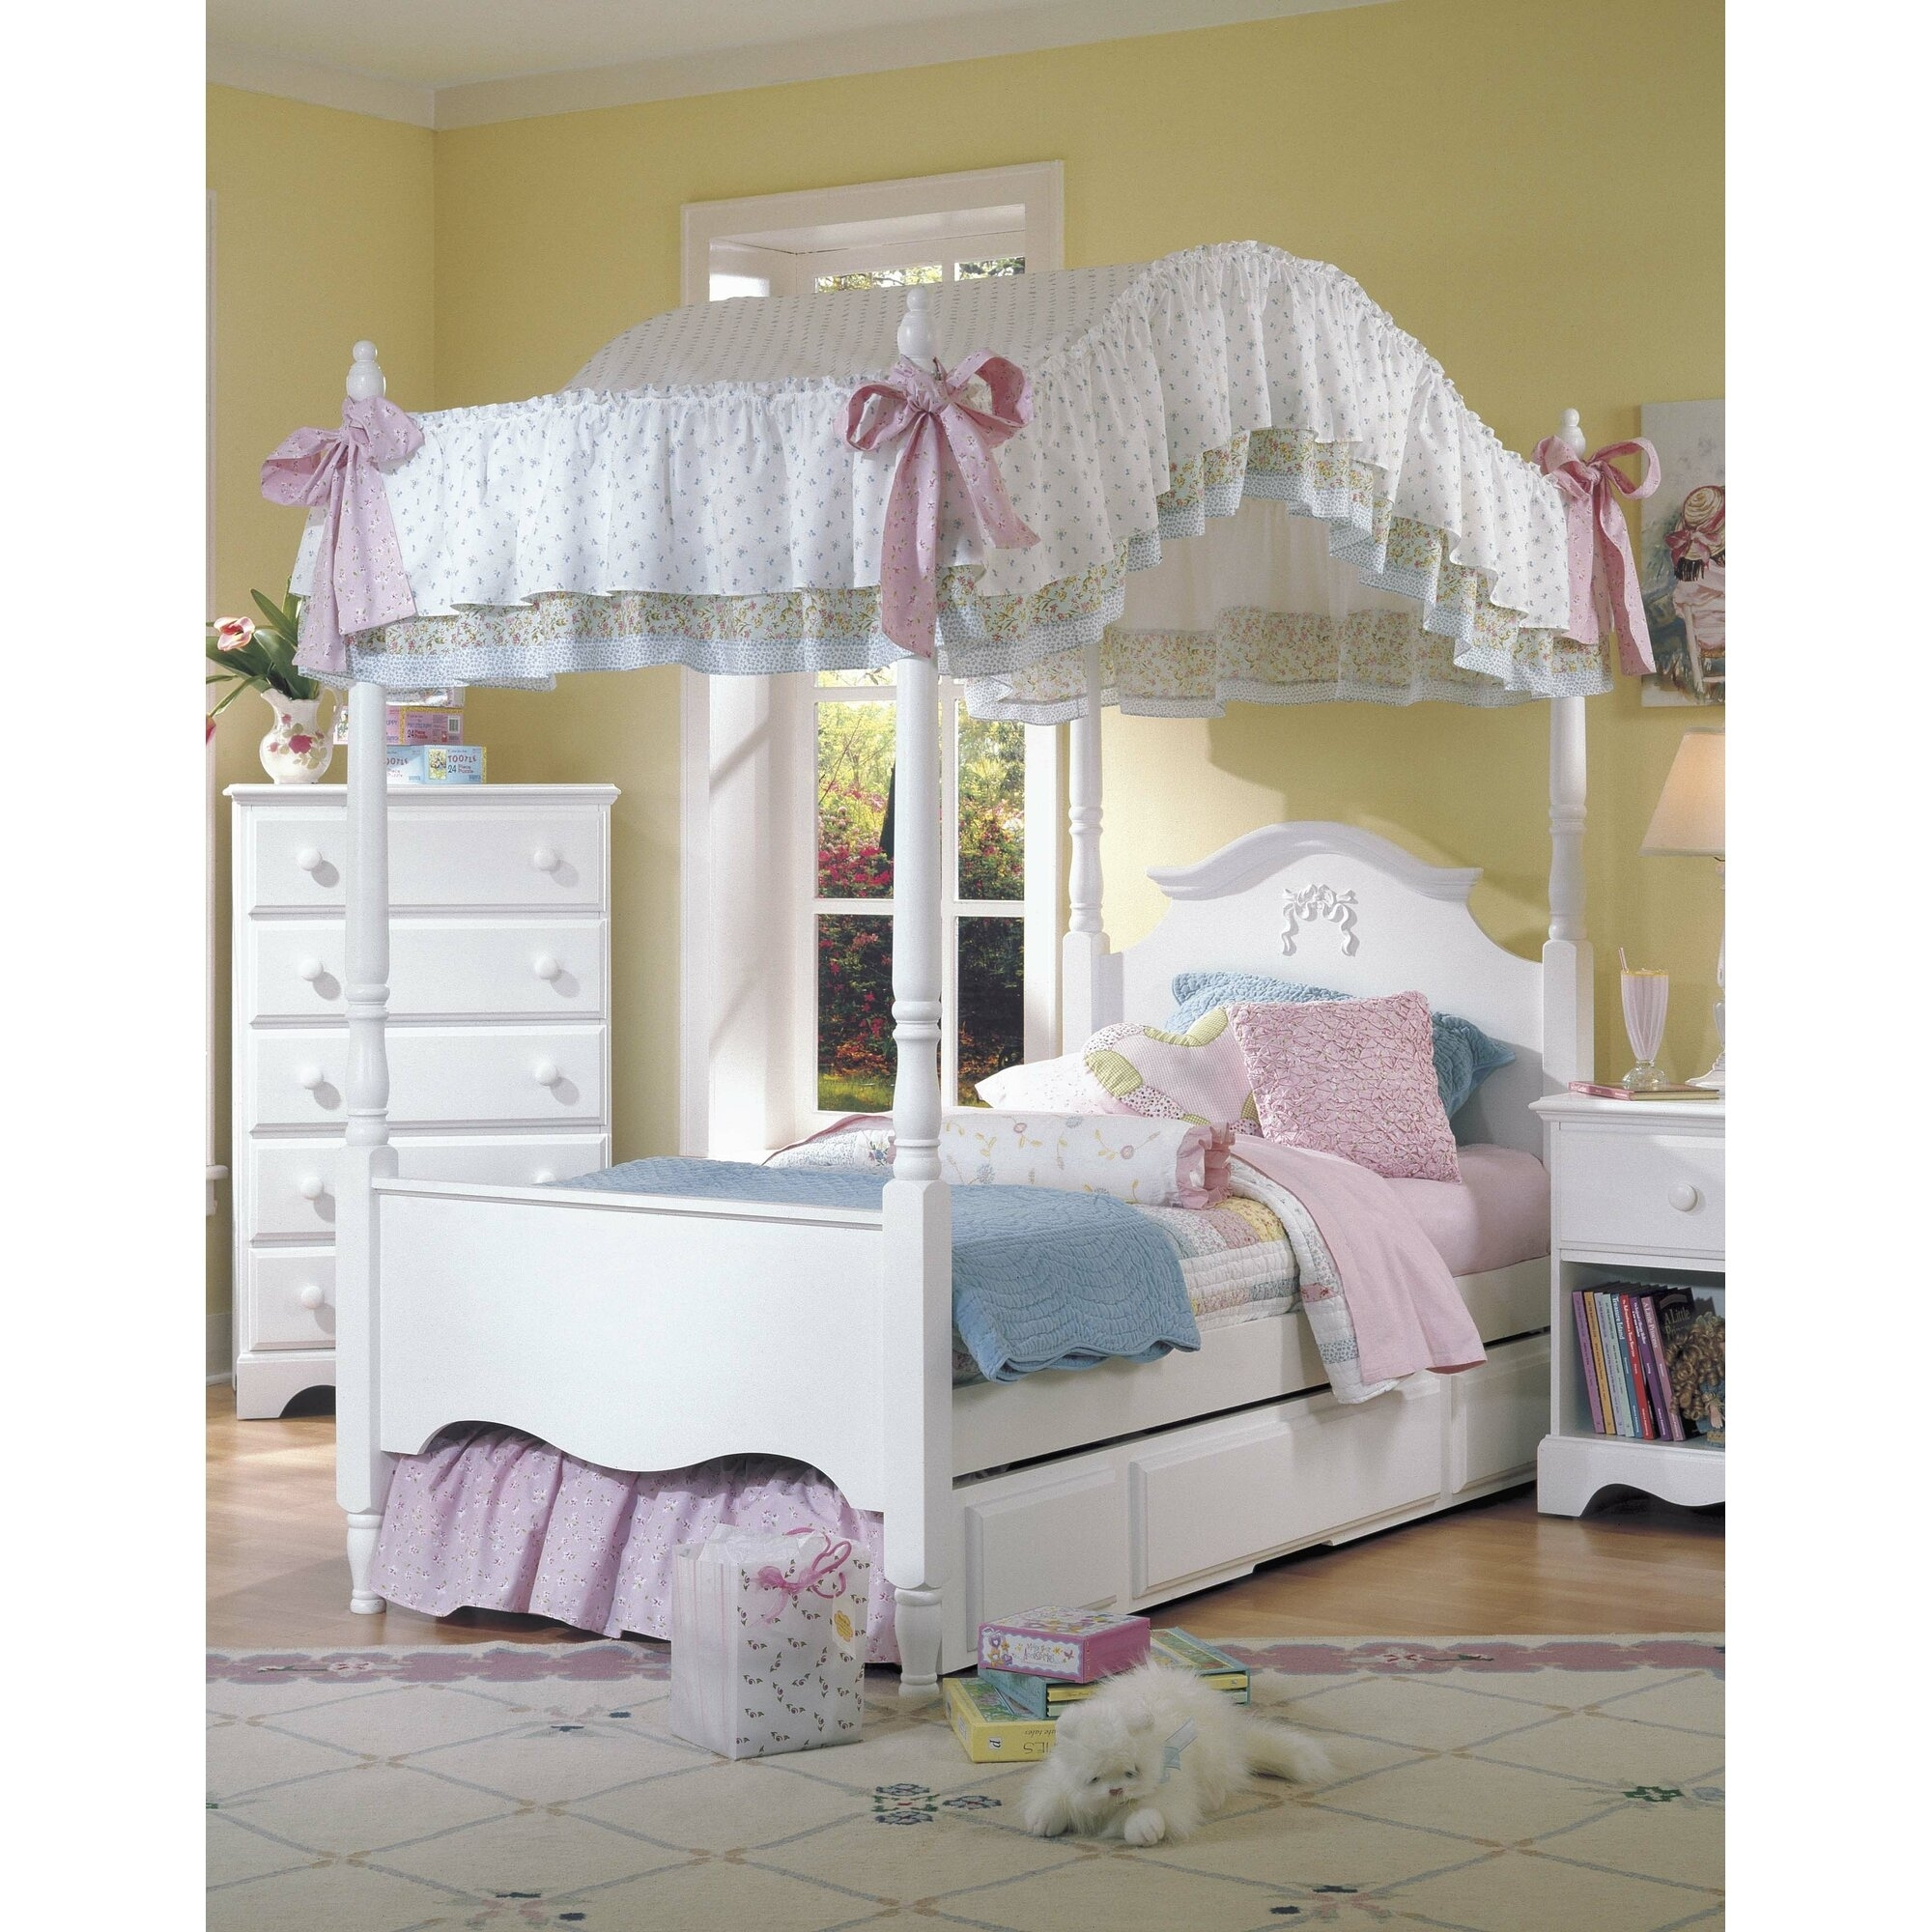 Image of: Girls Canopy Bedroom Set Ideas On Foter